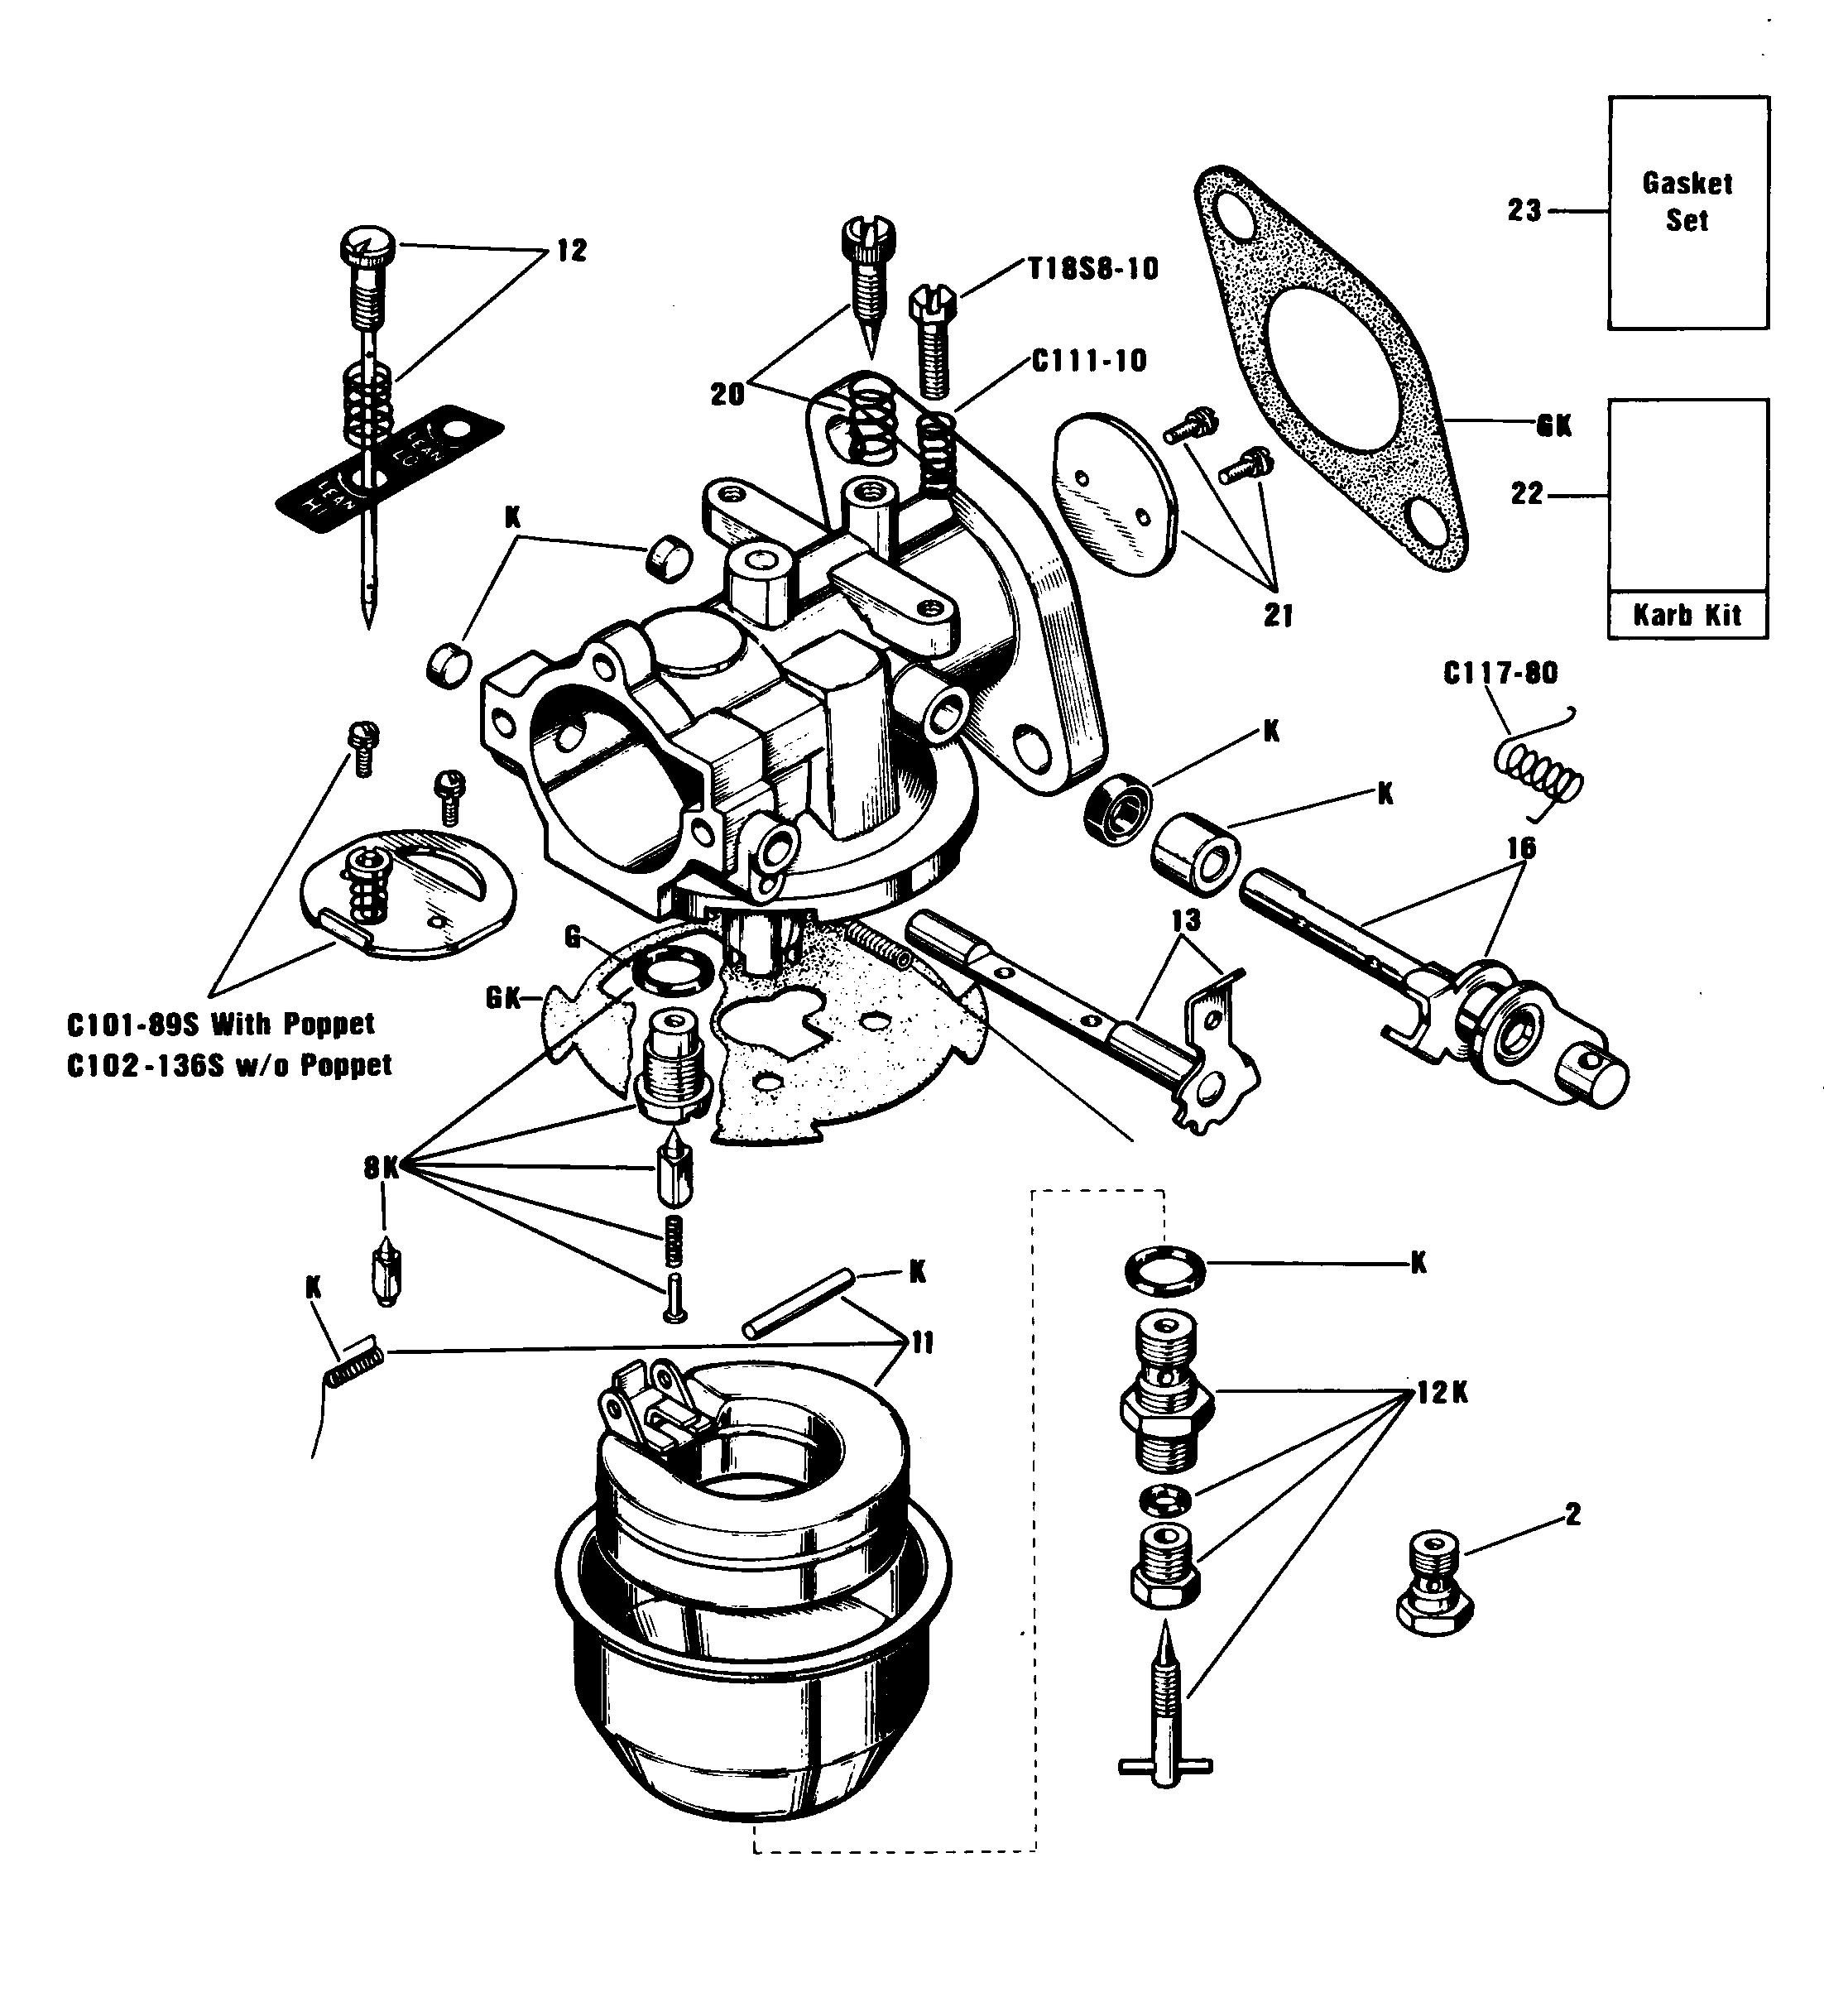 tillotson carb parts diagram